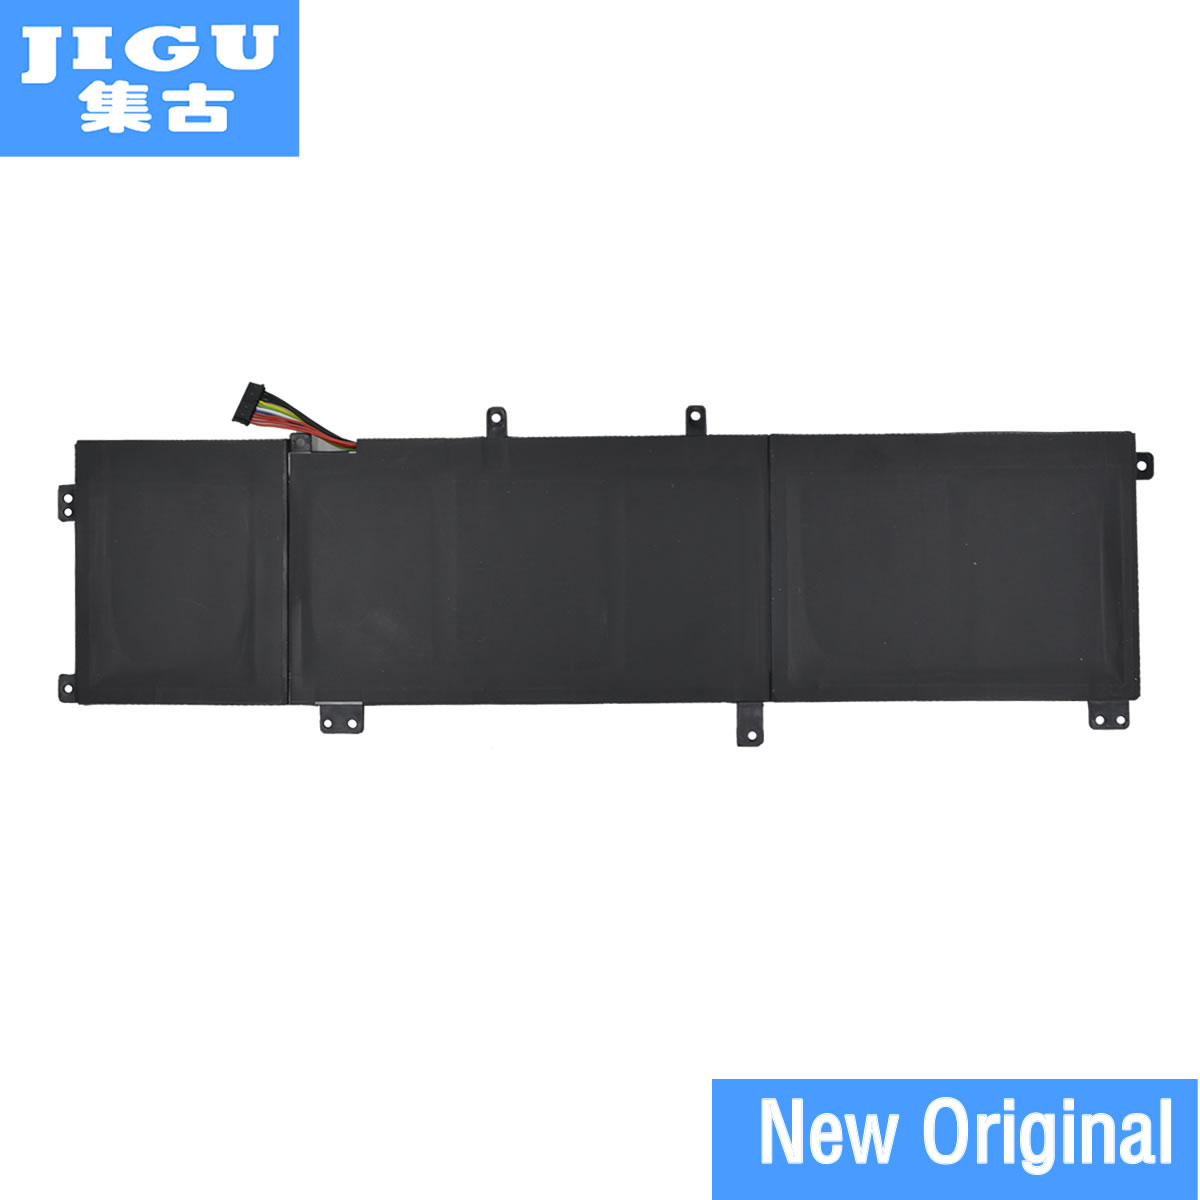 все цены на  JIGU New Genuine 11.1V 91Wh 245RR 701WJ 7D1WJ ORIGINAL BATTERY For Dell for Precision M3800 XPS 15 9530  онлайн